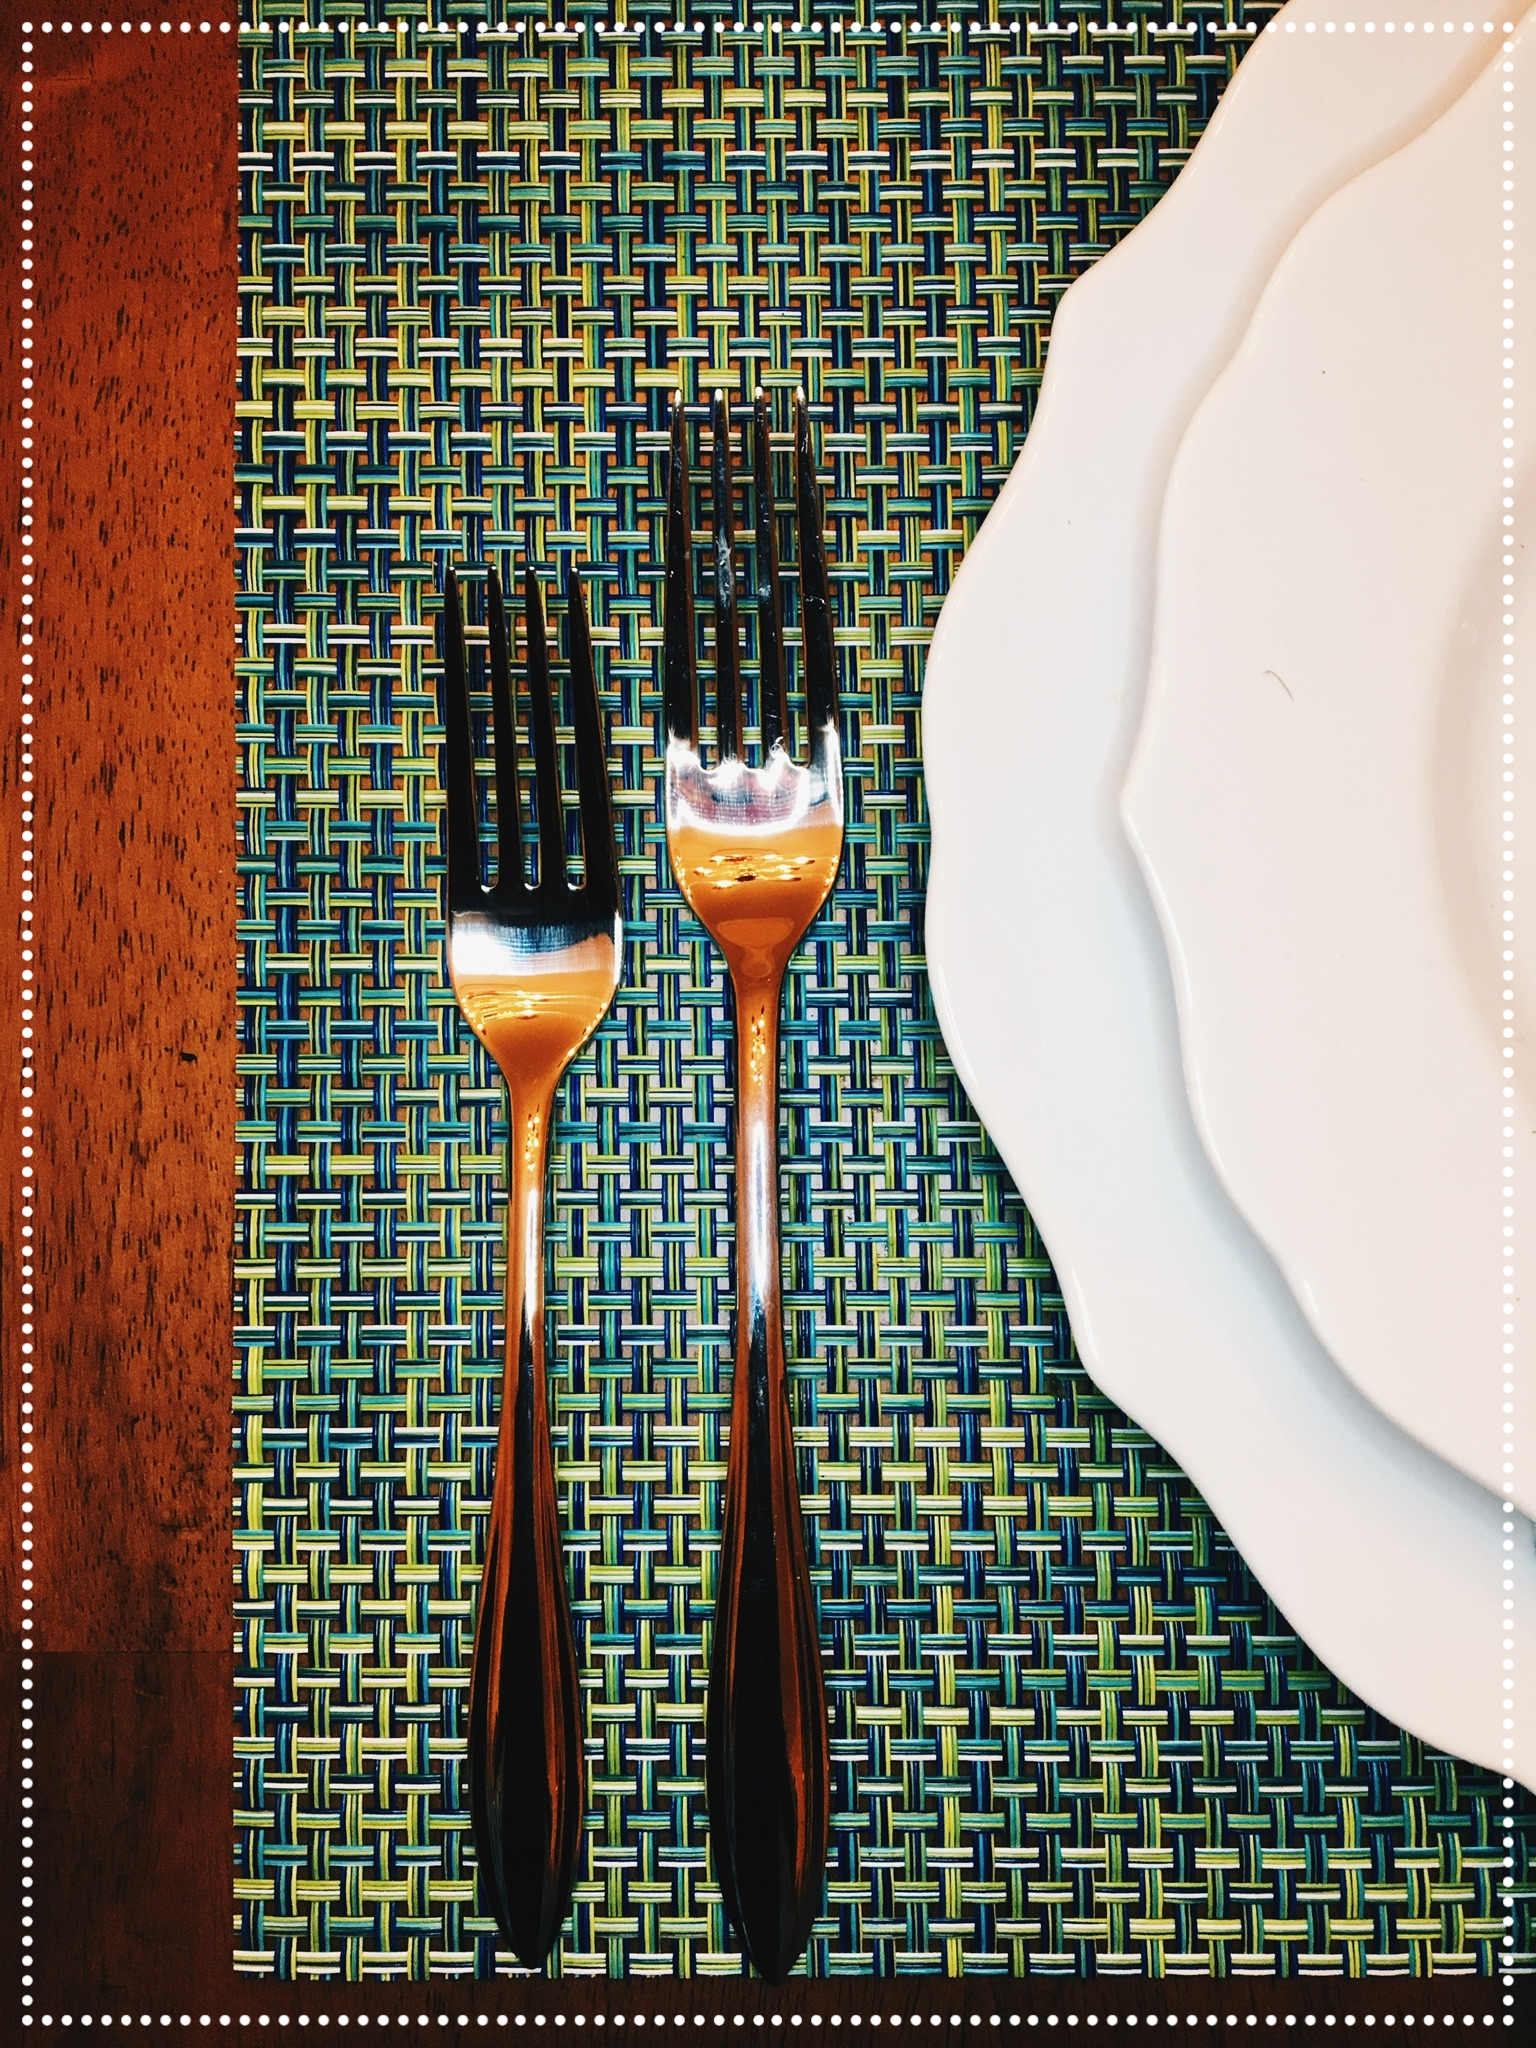 Salad is typically served before the main course. The salad fork is often placed on the far left side of the place mat. The dinner fork is normally placed to the right of the salad fork.